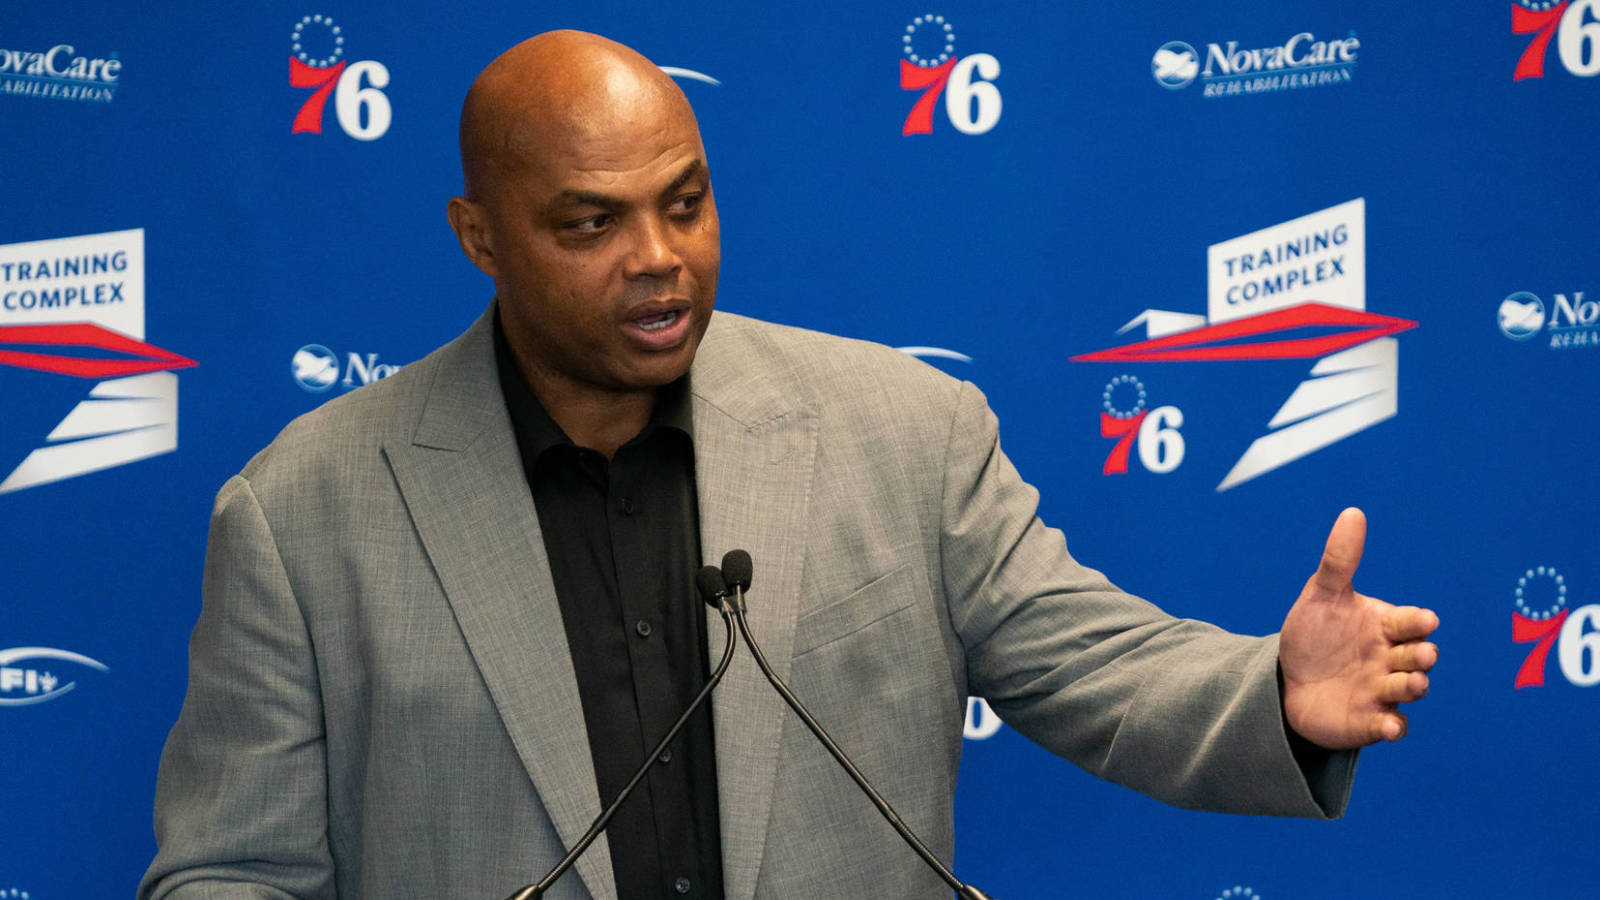 Charles Barkley criticises Kyrie Irving for being 'unprofessional' following media blackout saga - THE SPORTS ROOM